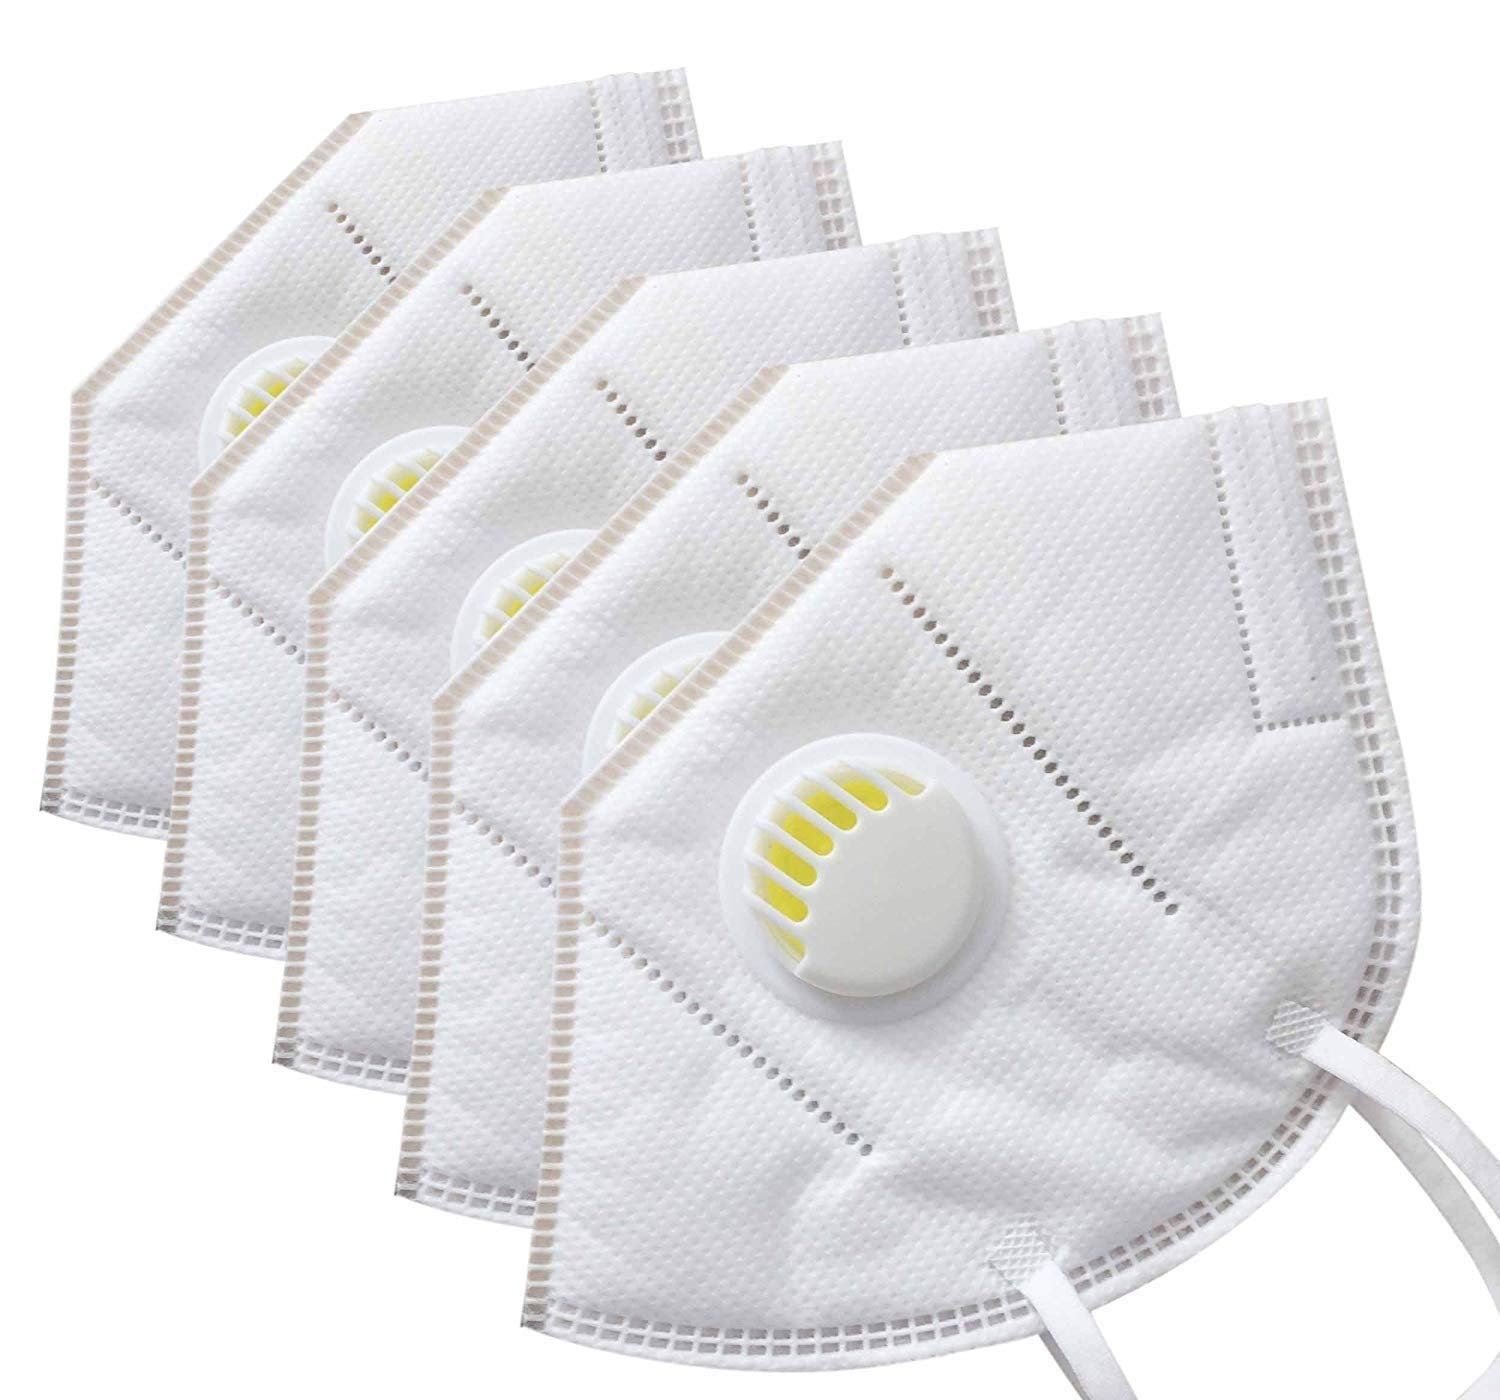 A & Y Safeguard F95 Reusable Outdoor Mask Pack of 6 + FREE Plastic Gloves Disposable (200pcs)